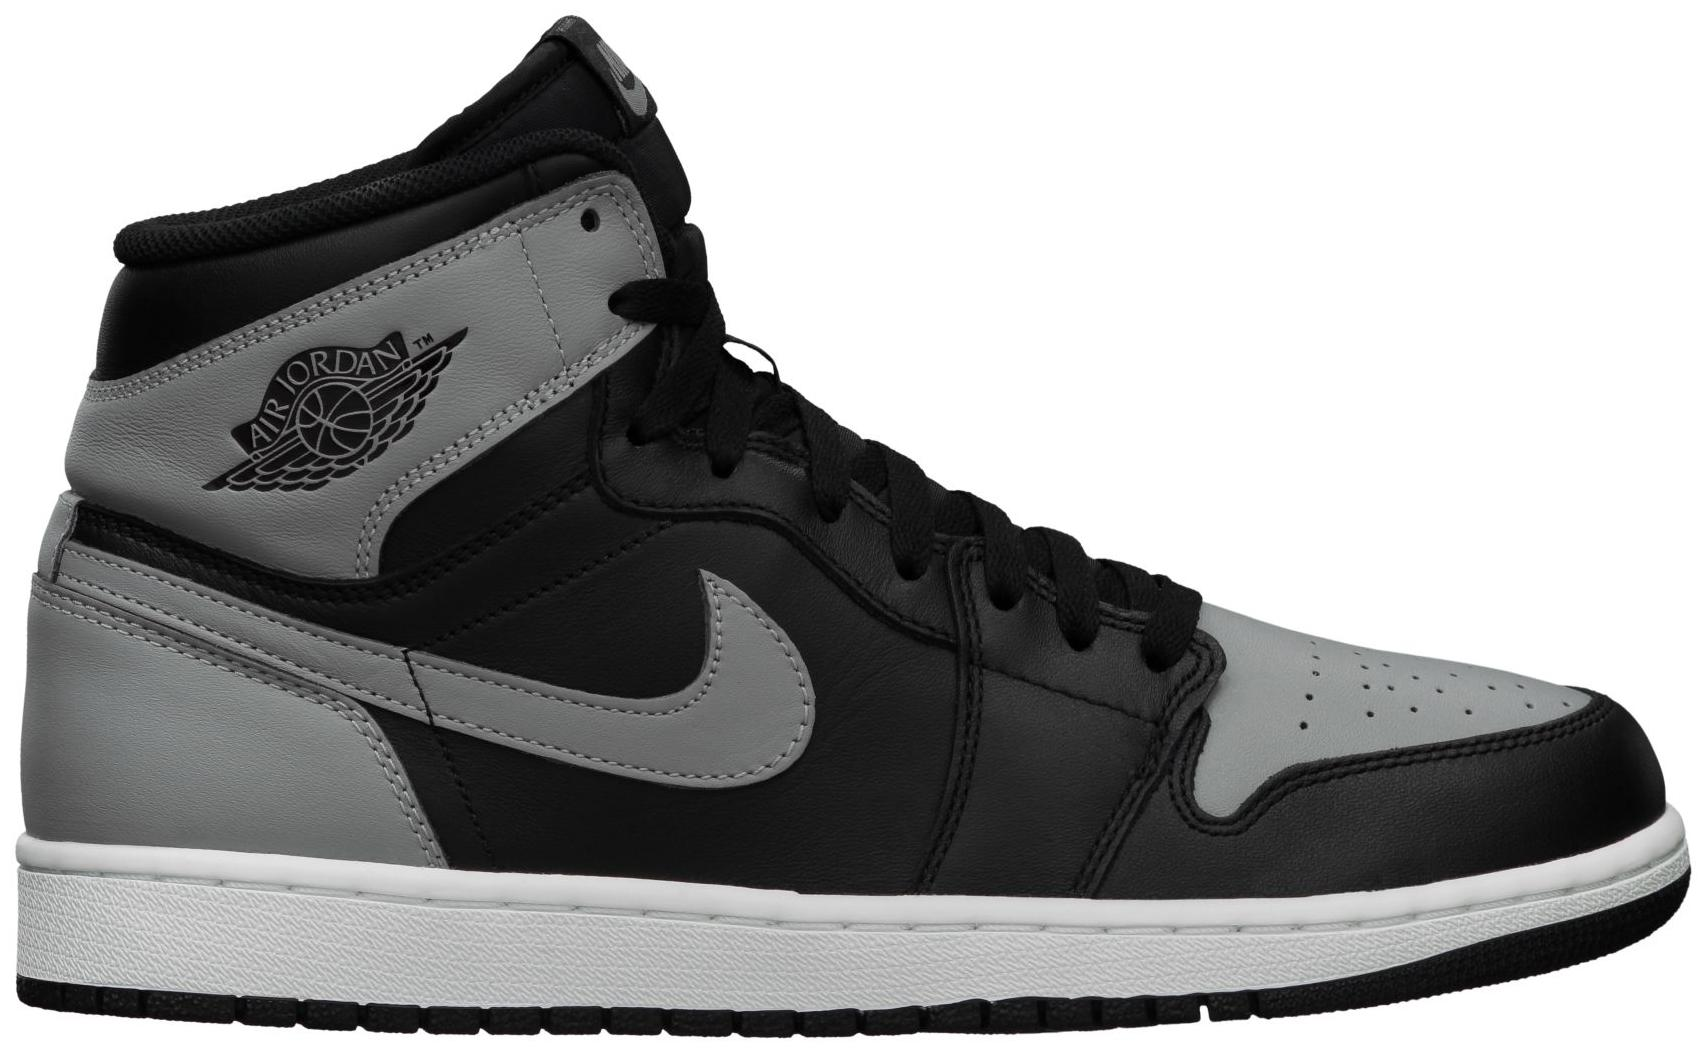 Jordan 1 Retro Shadow (2013)